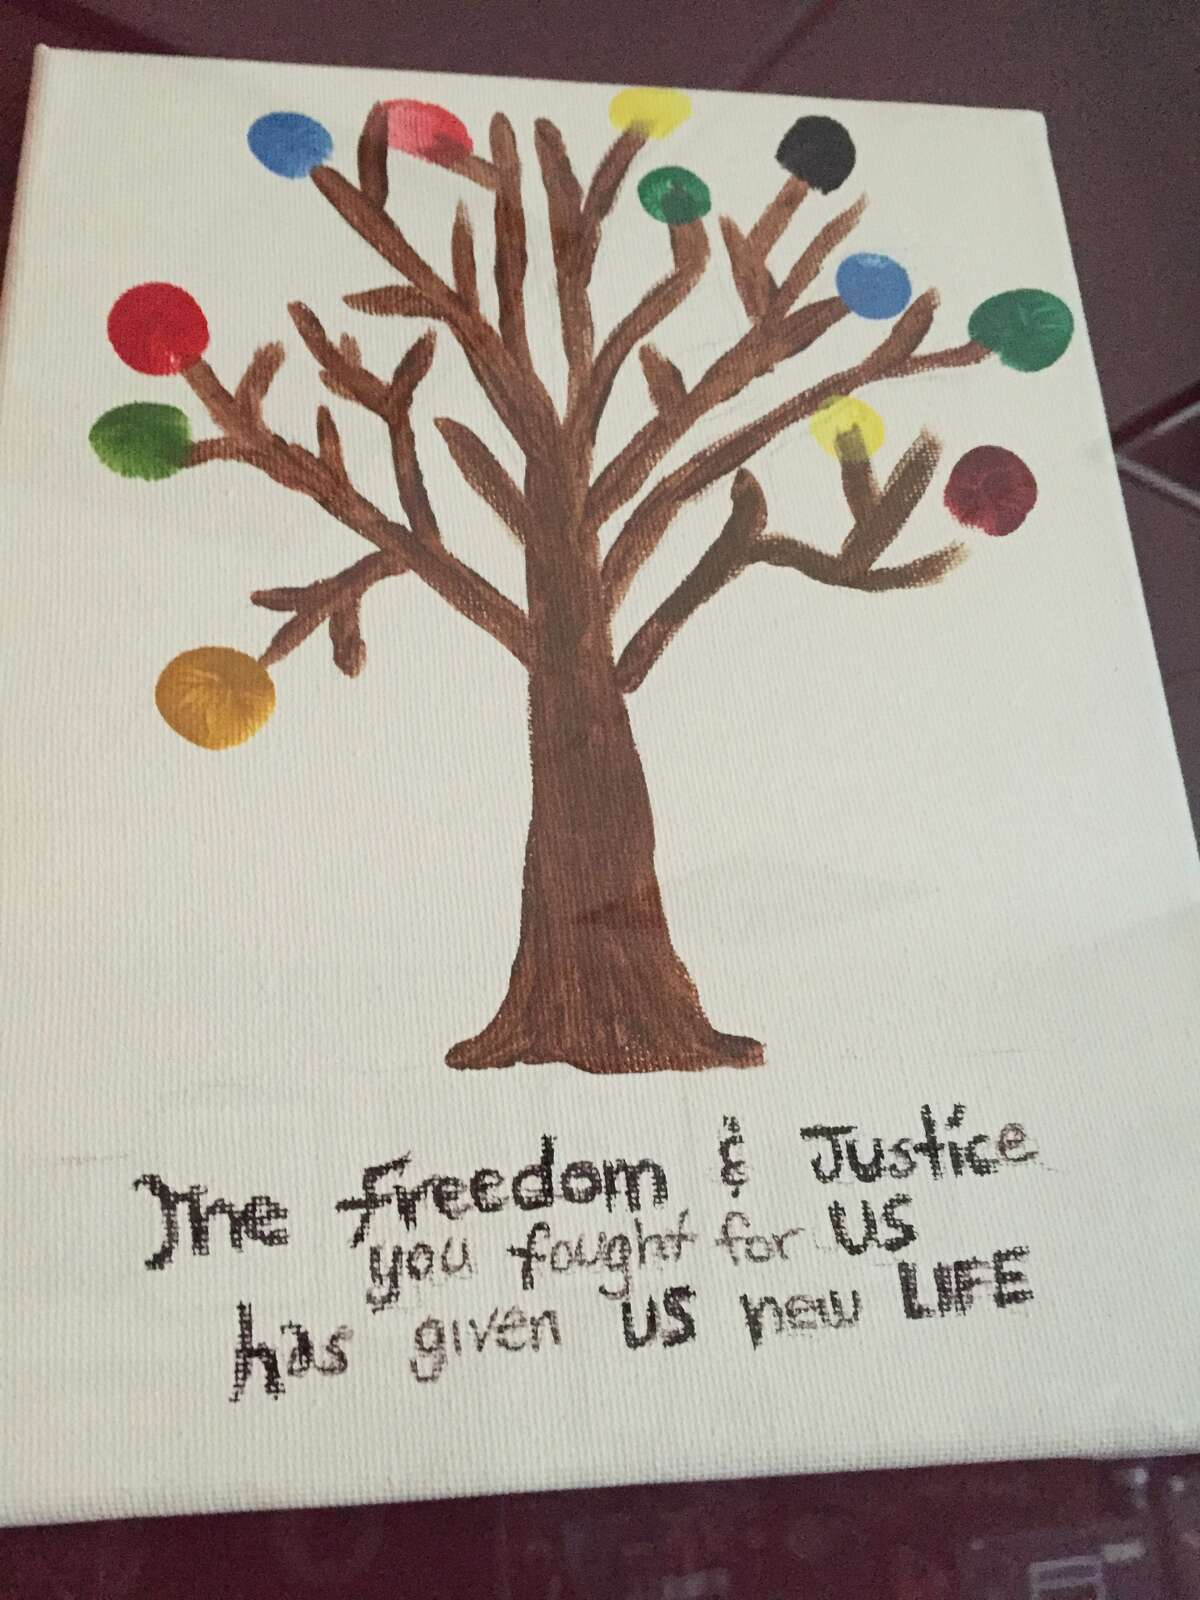 This painting was made by victims of a Houston brothel based sex-trafficking ring and presented to prosecutors and an investigator as a thank you. The colored bulbs on the tree are made with fingerprints from each of a dozen women who testified against the ring's leader, who was sentenced to life in prison.